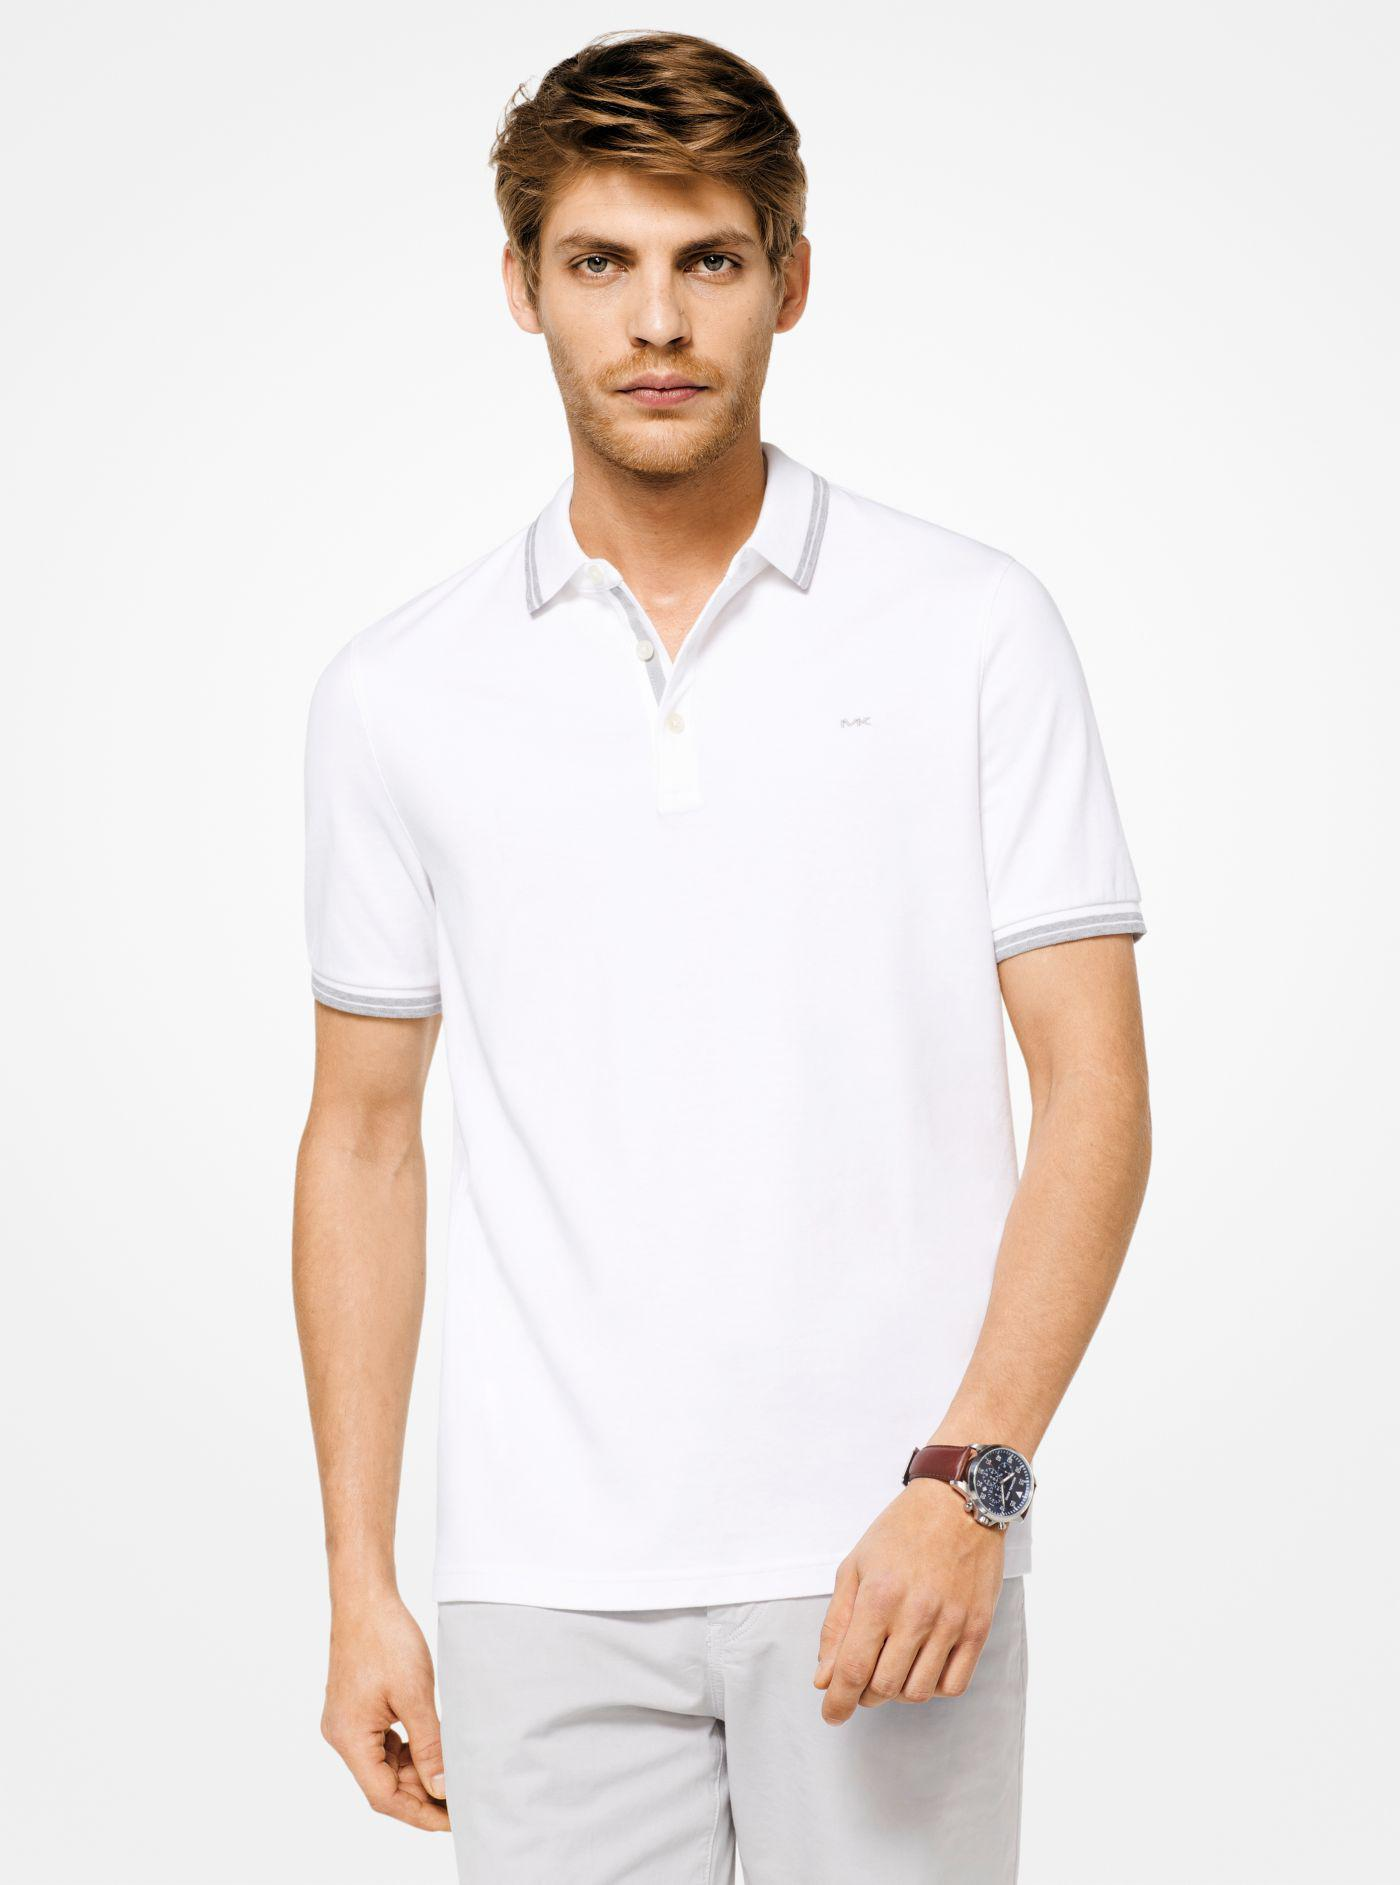 d62b31a5a33c01 Michael Kors Greenwich Cotton Polo Shirt in White for Men - Lyst